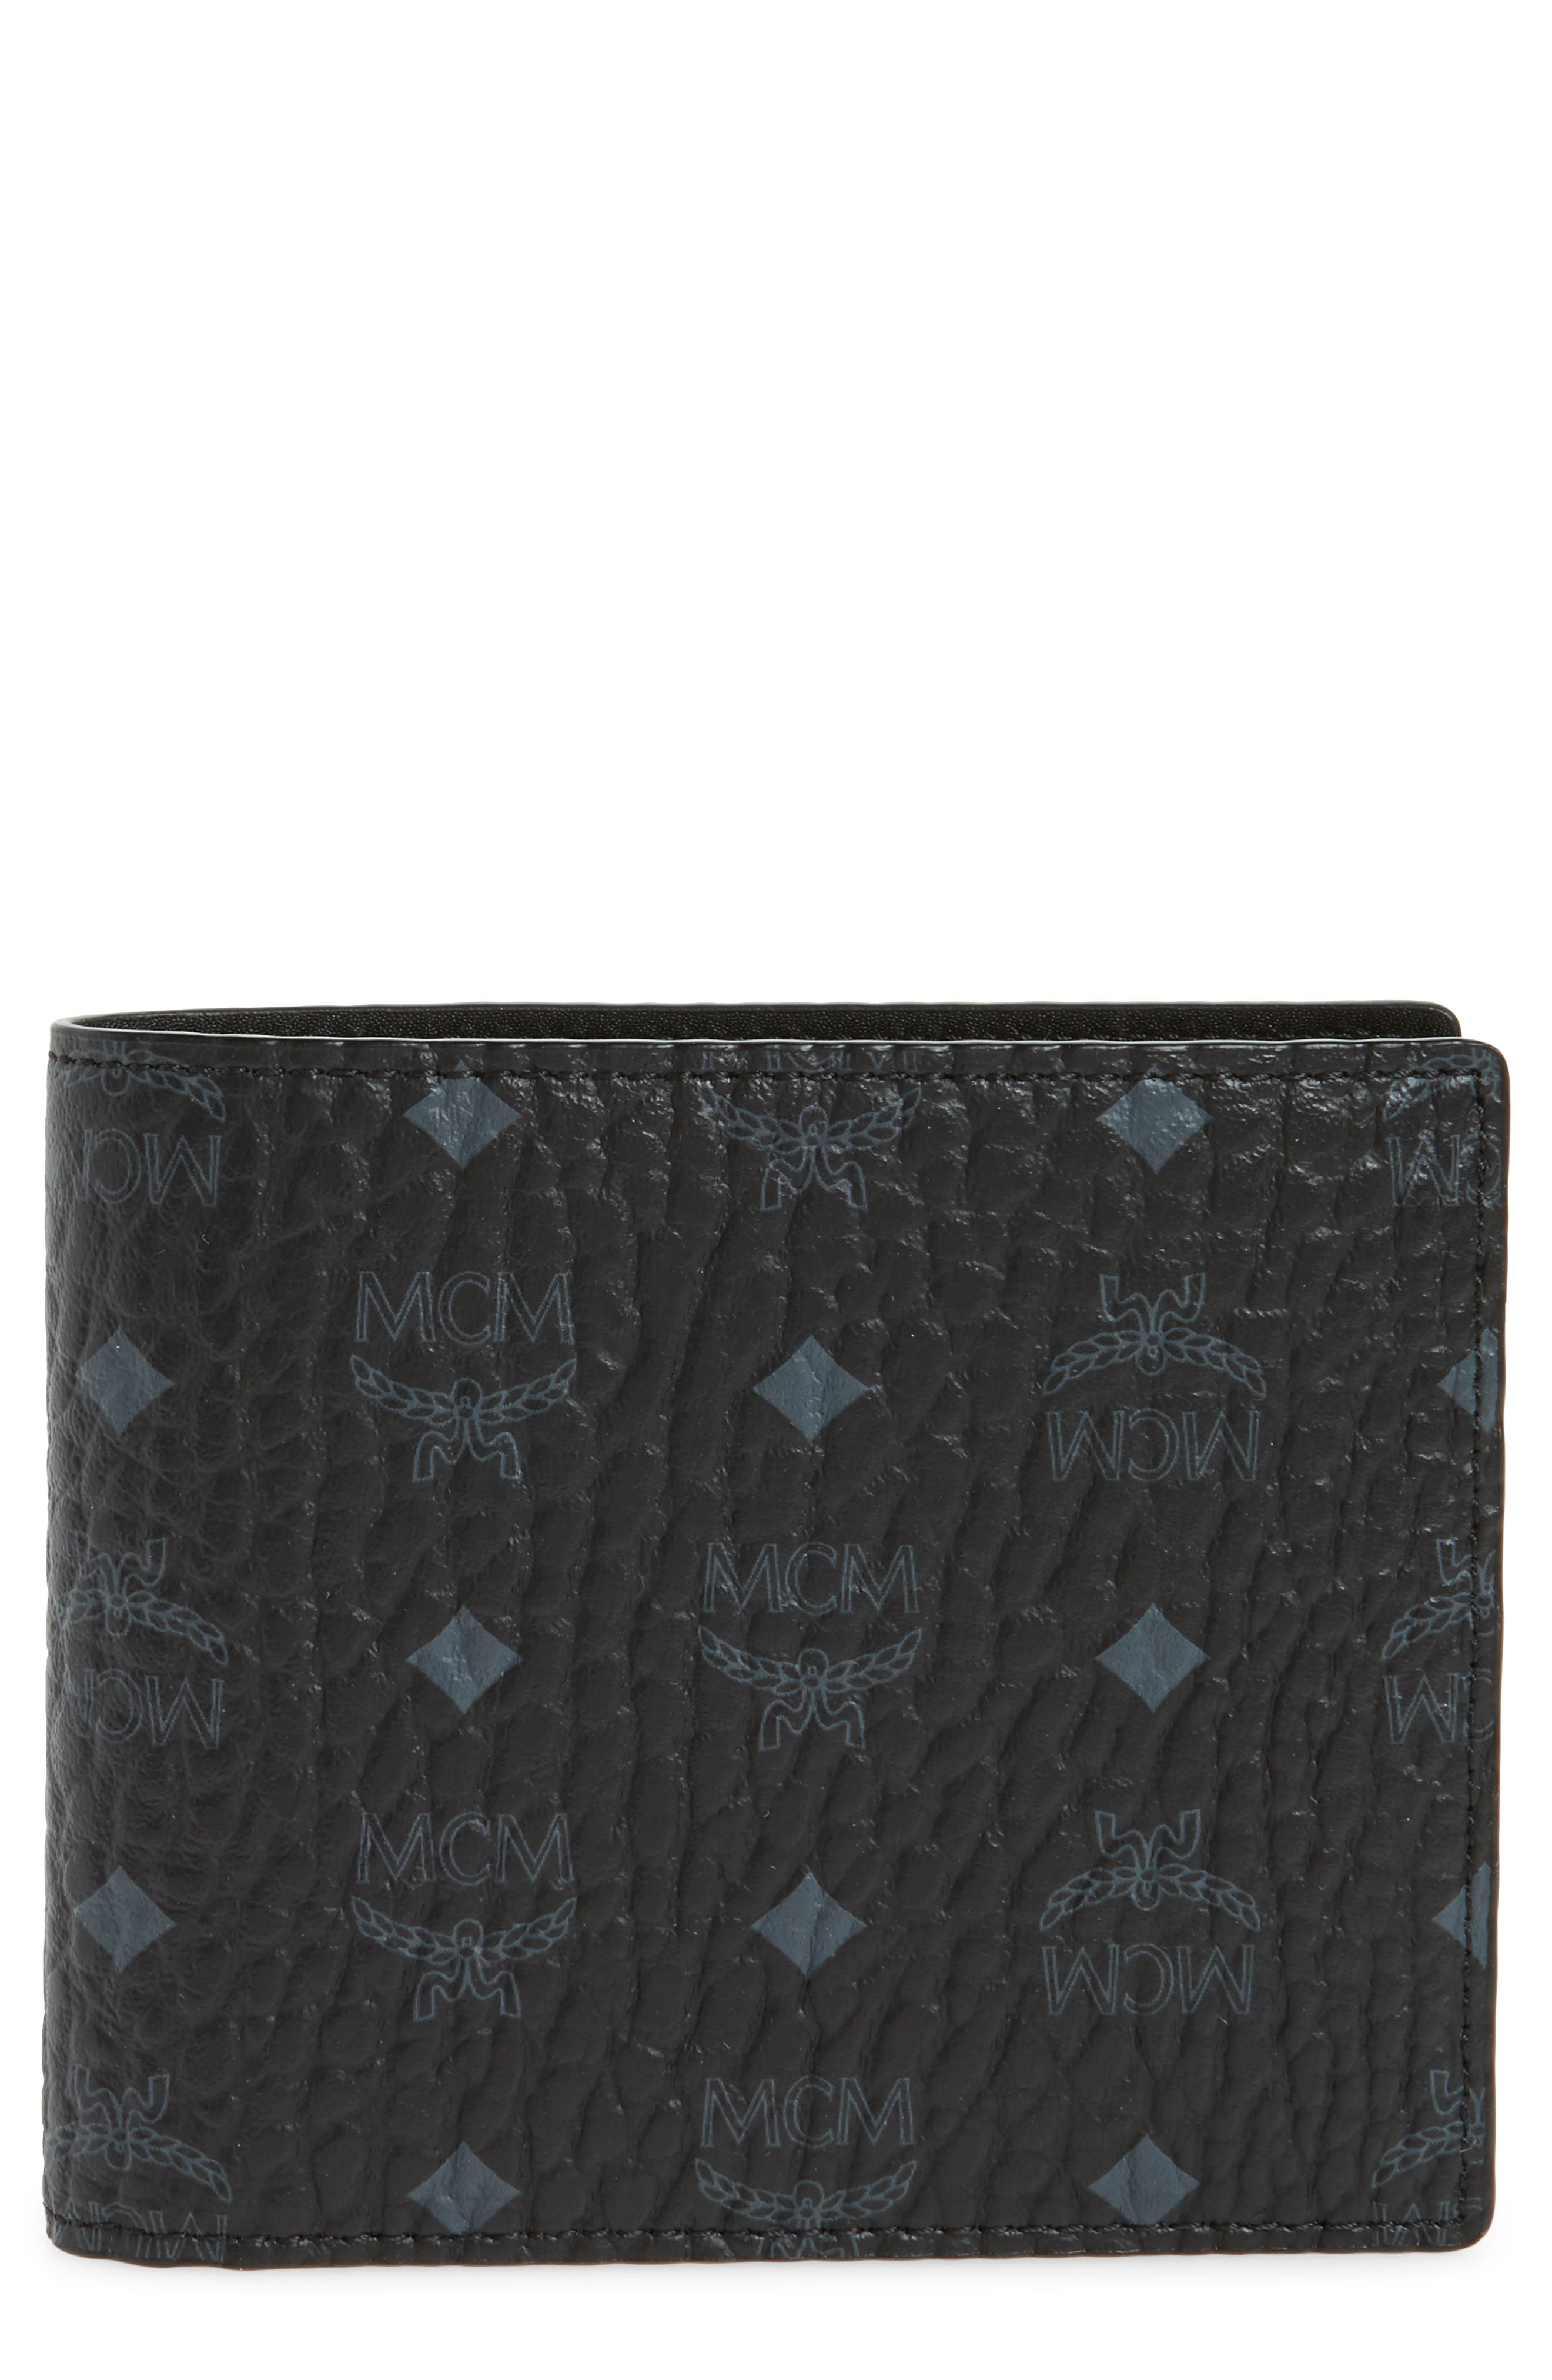 MCM,                             Logo Coated Canvas & Leather Wallet,                             Main thumbnail 1, color,                             BLACK